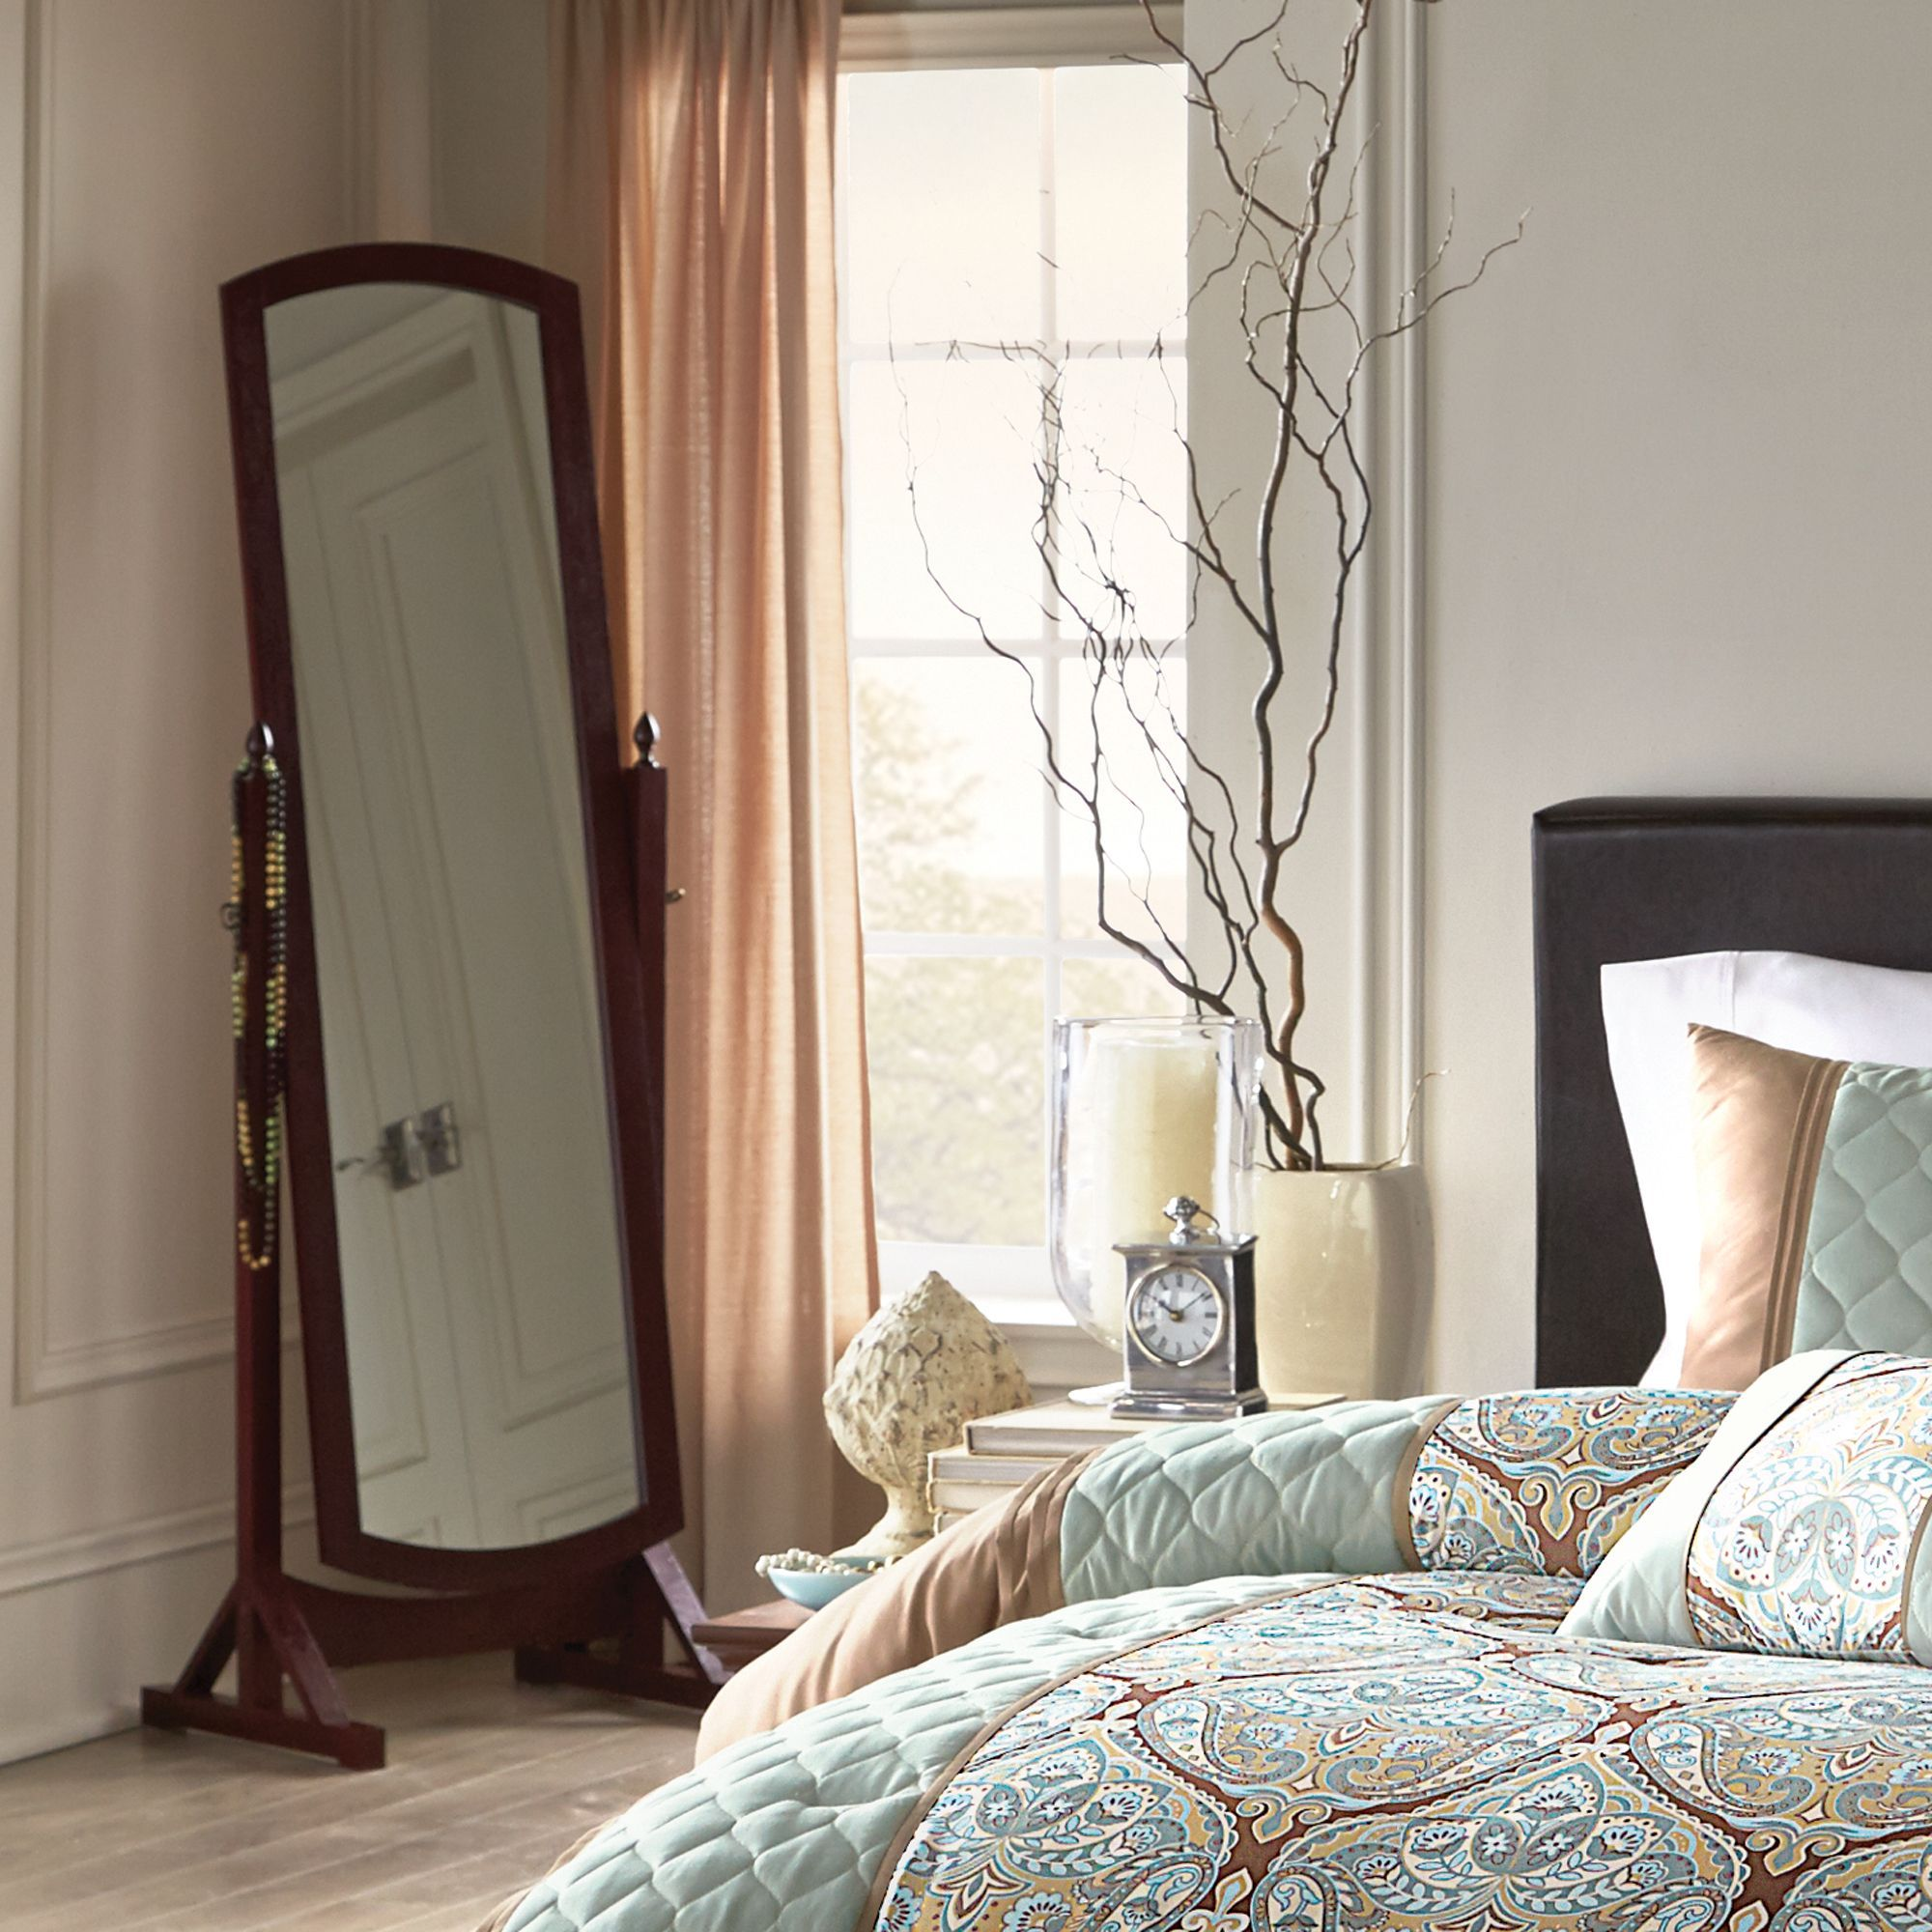 Virtual Dorm Room Design: A Full-length #mirror Is A Must-have For Your Dorm Room